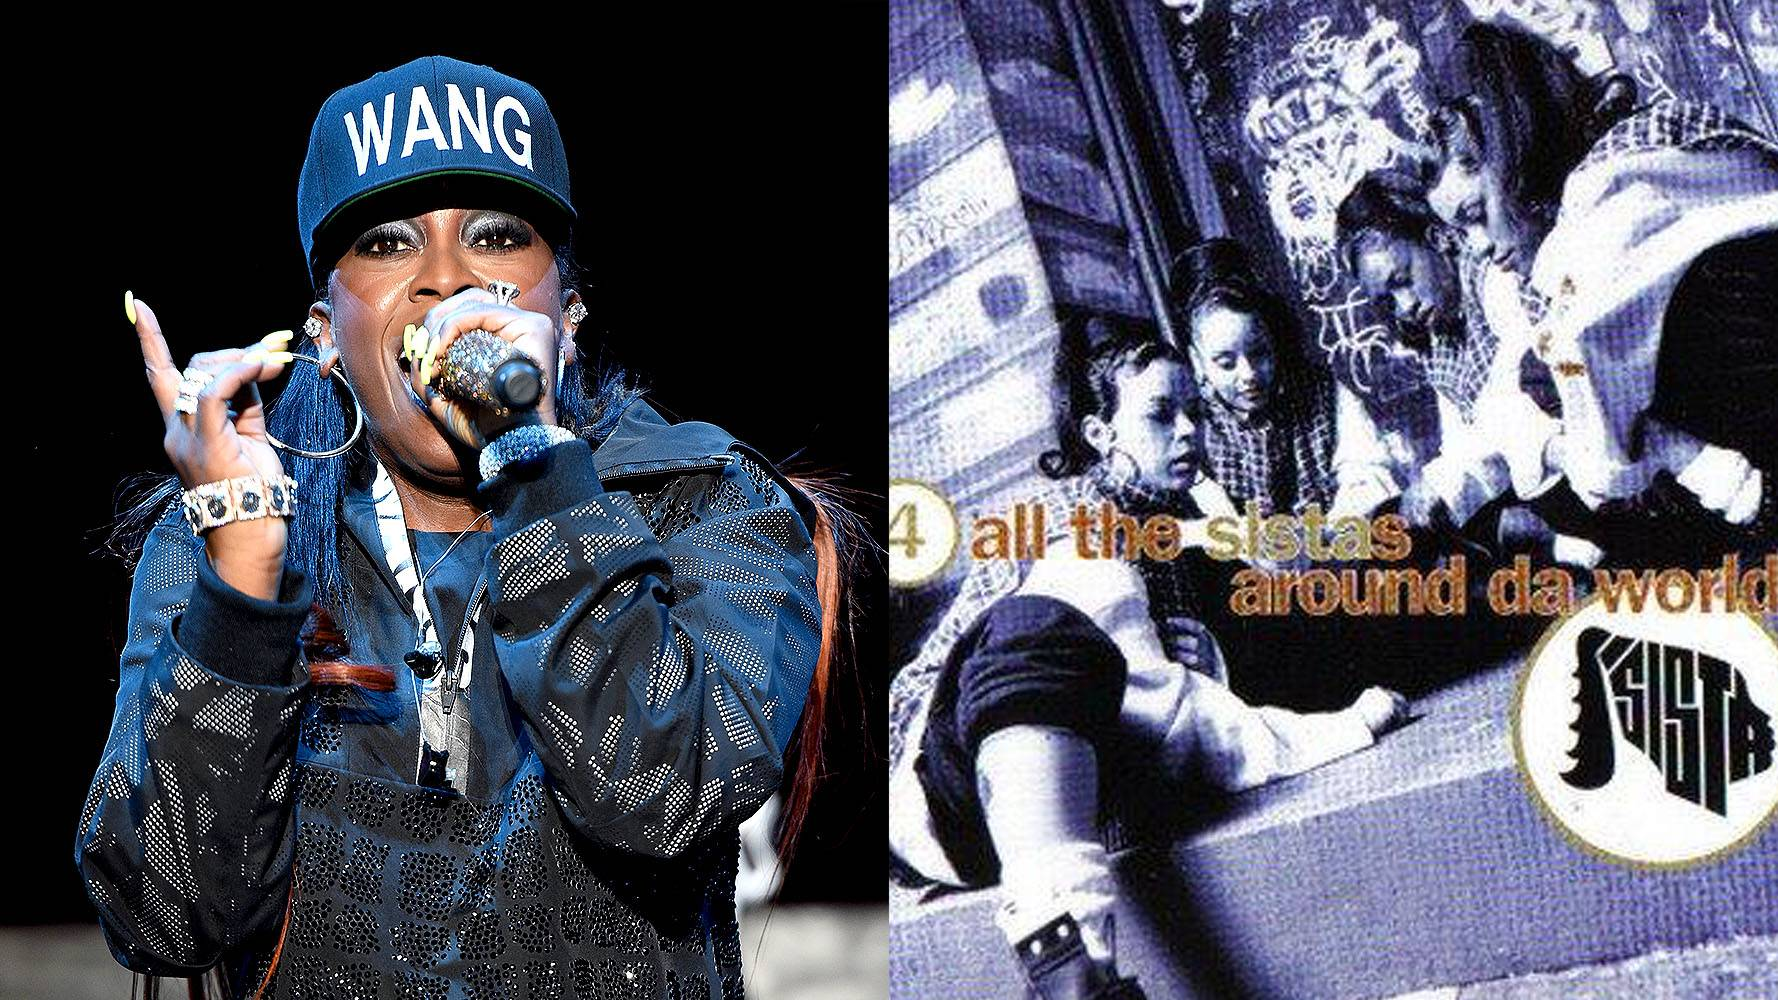 Missy Elliott | Sista  - Before she was Missy 'Misdemeanor' Elliott, she started off in the all-girl group Sista showing off her killer vocals. These R&B sistahs had some good jams! (Photos from Left: Andrew H. Walker/Getty Images for H&M, Swing Mob/Elektra Records)